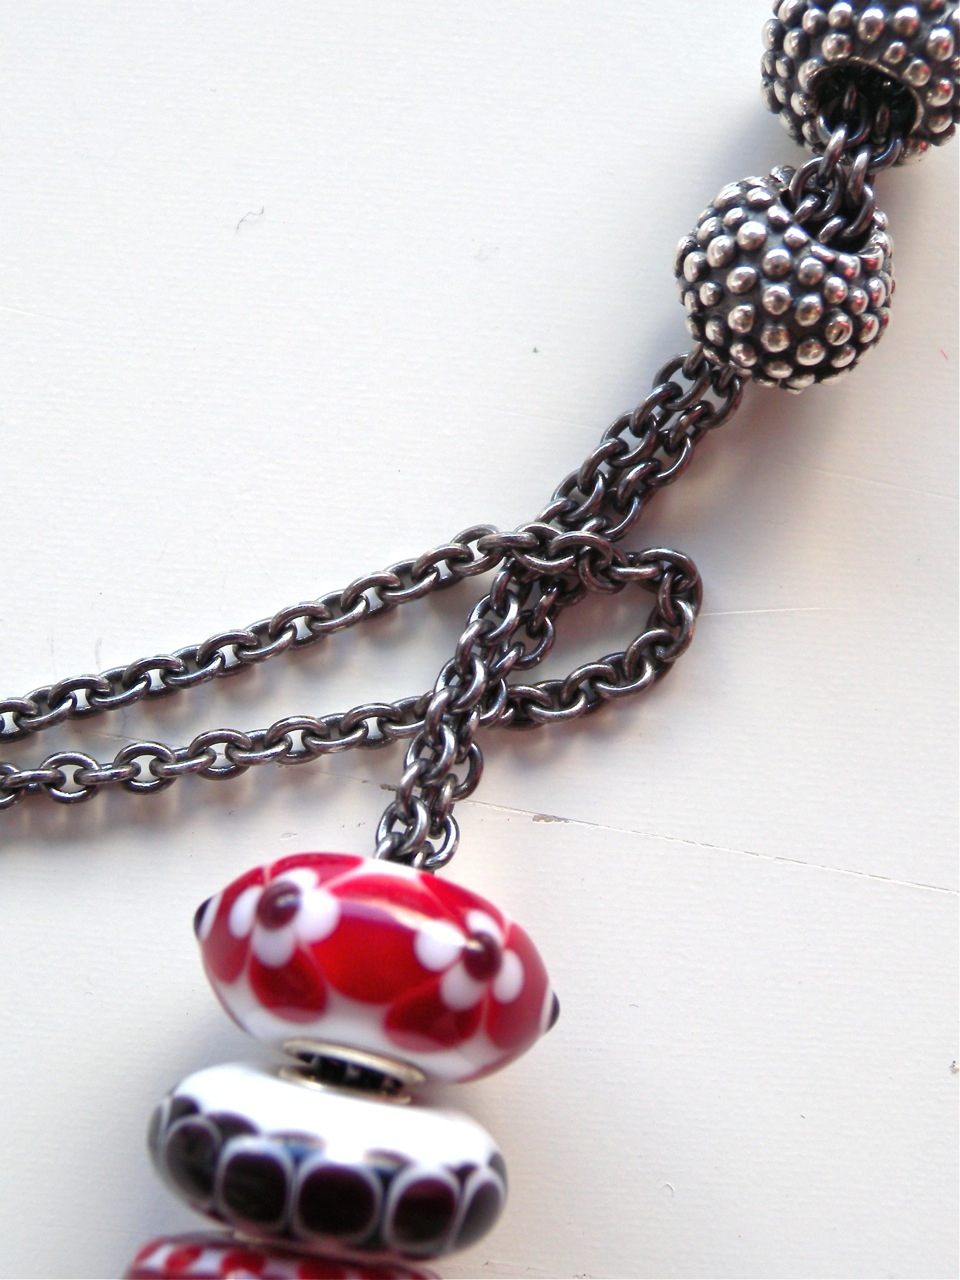 Trollbeads Inspiration: How do you wear your Trollbeads